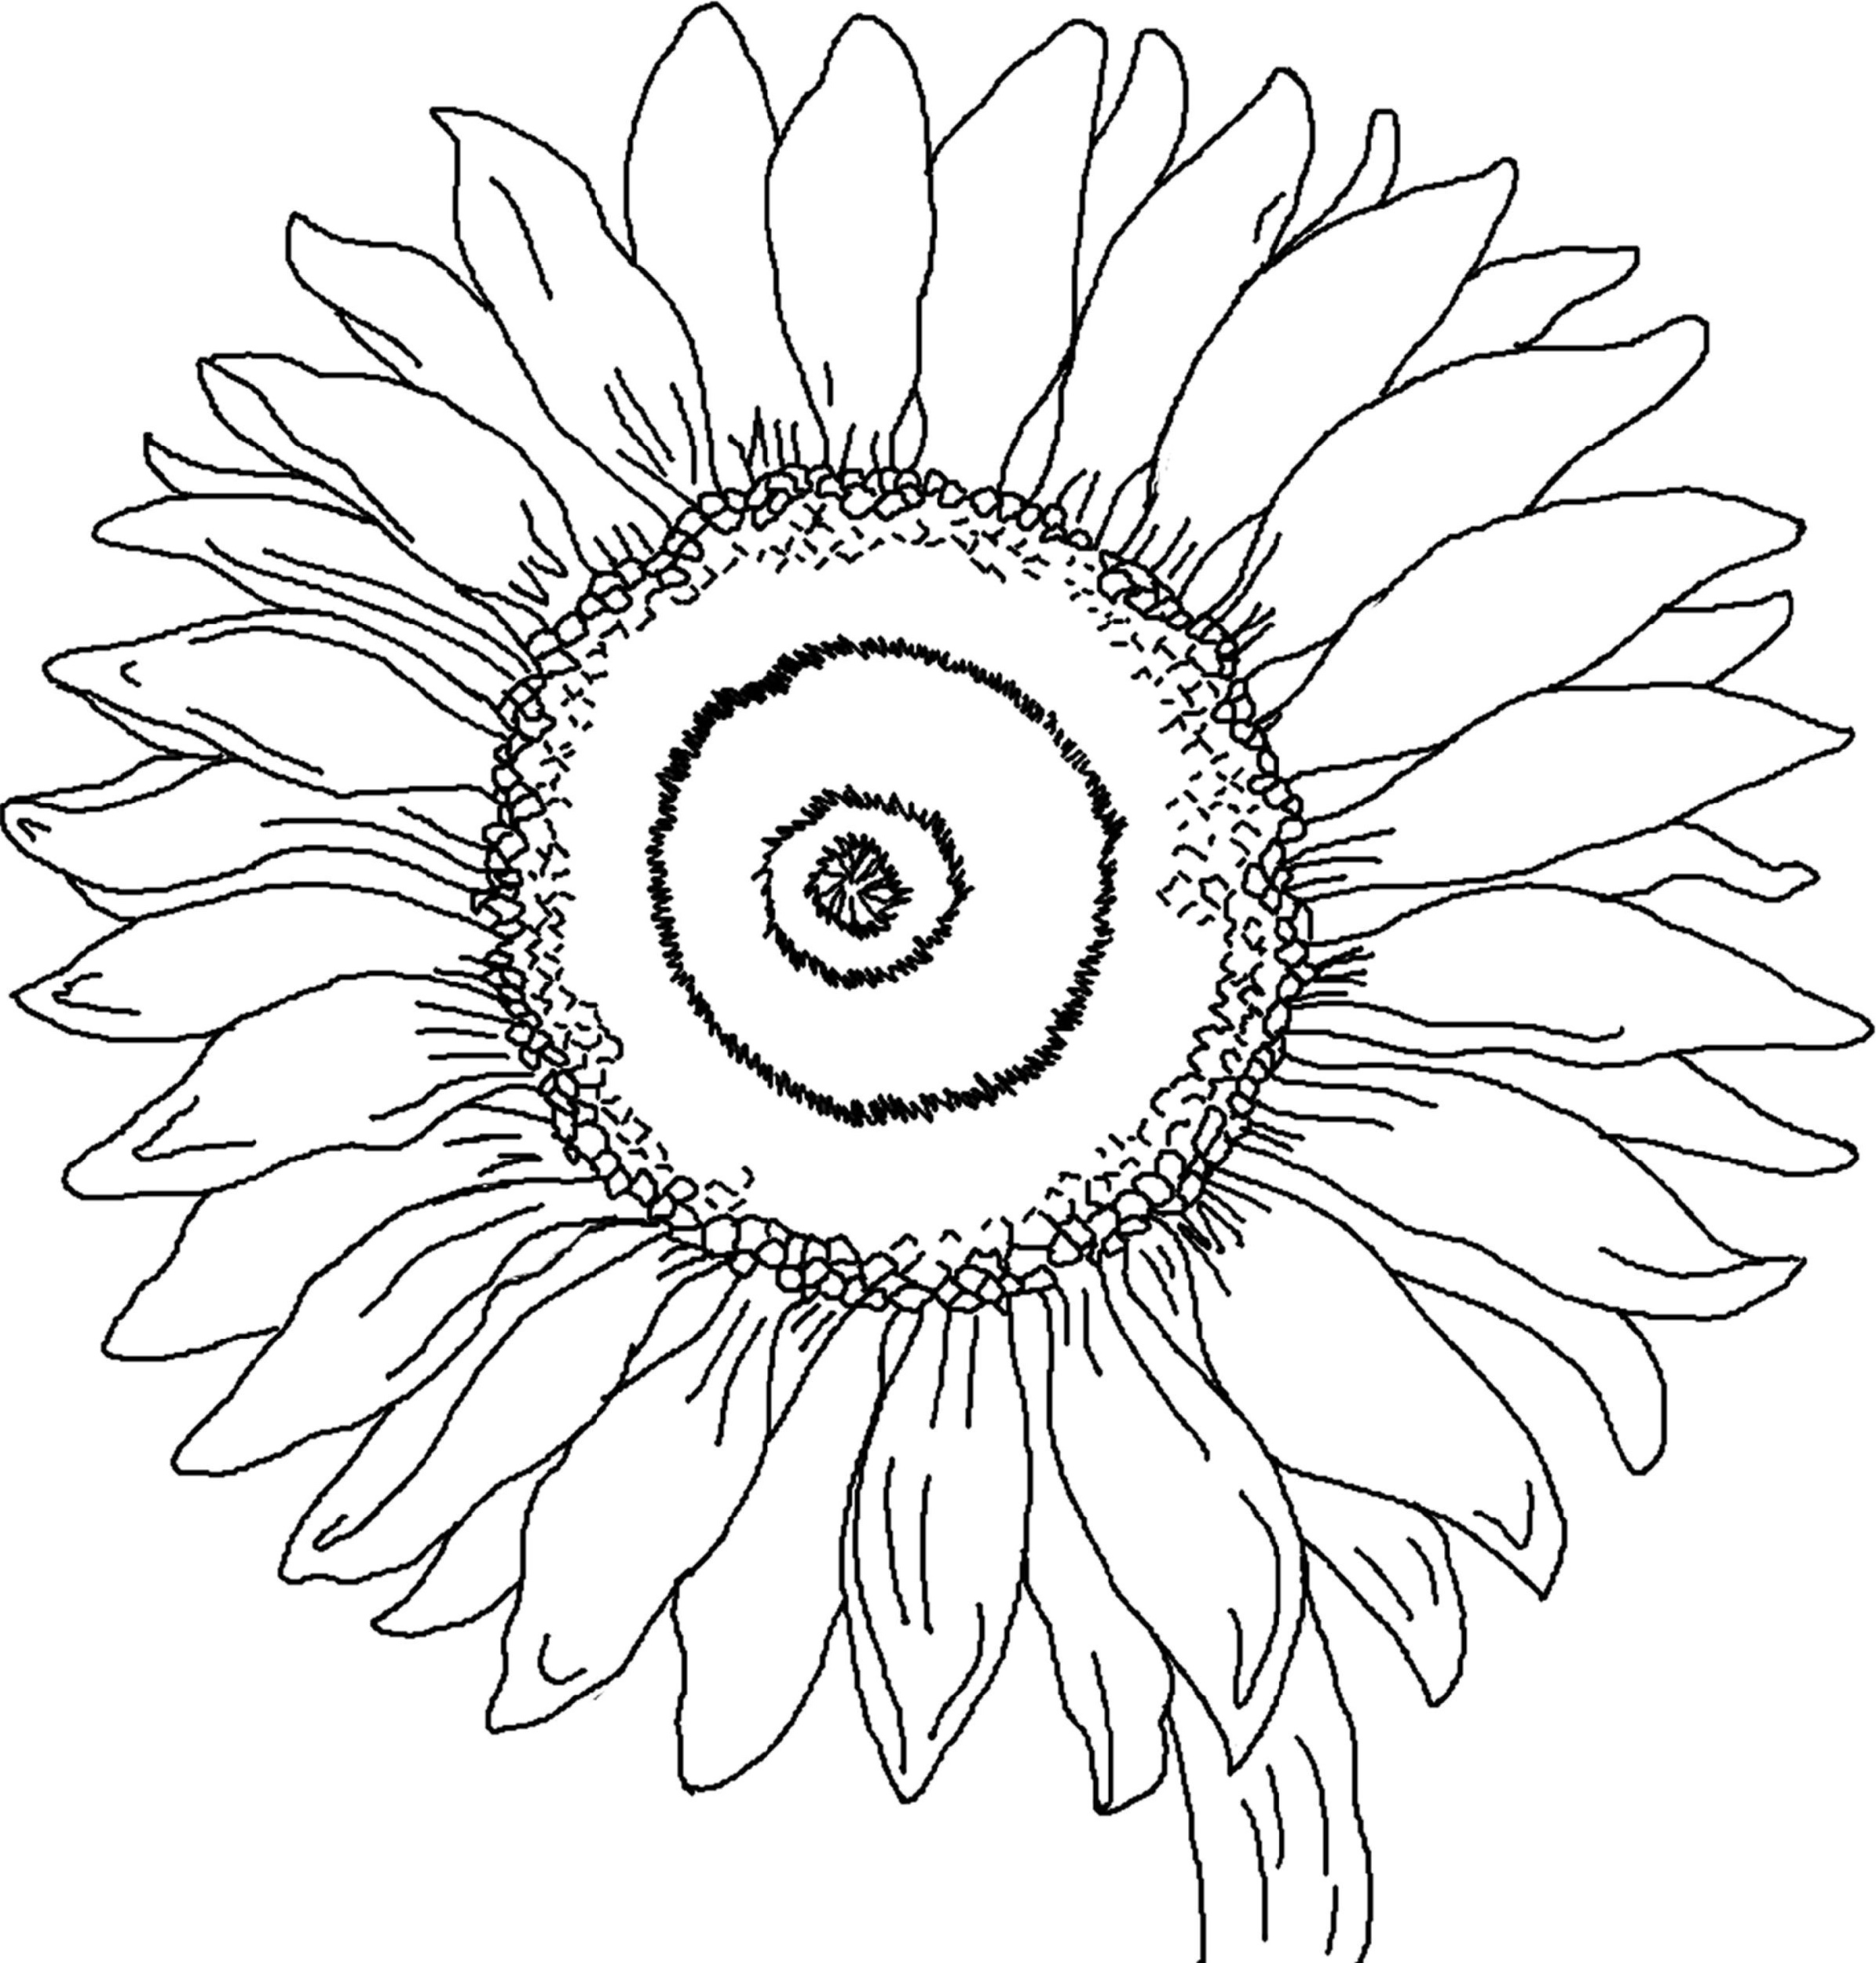 Sunflower Coloring Page To Print